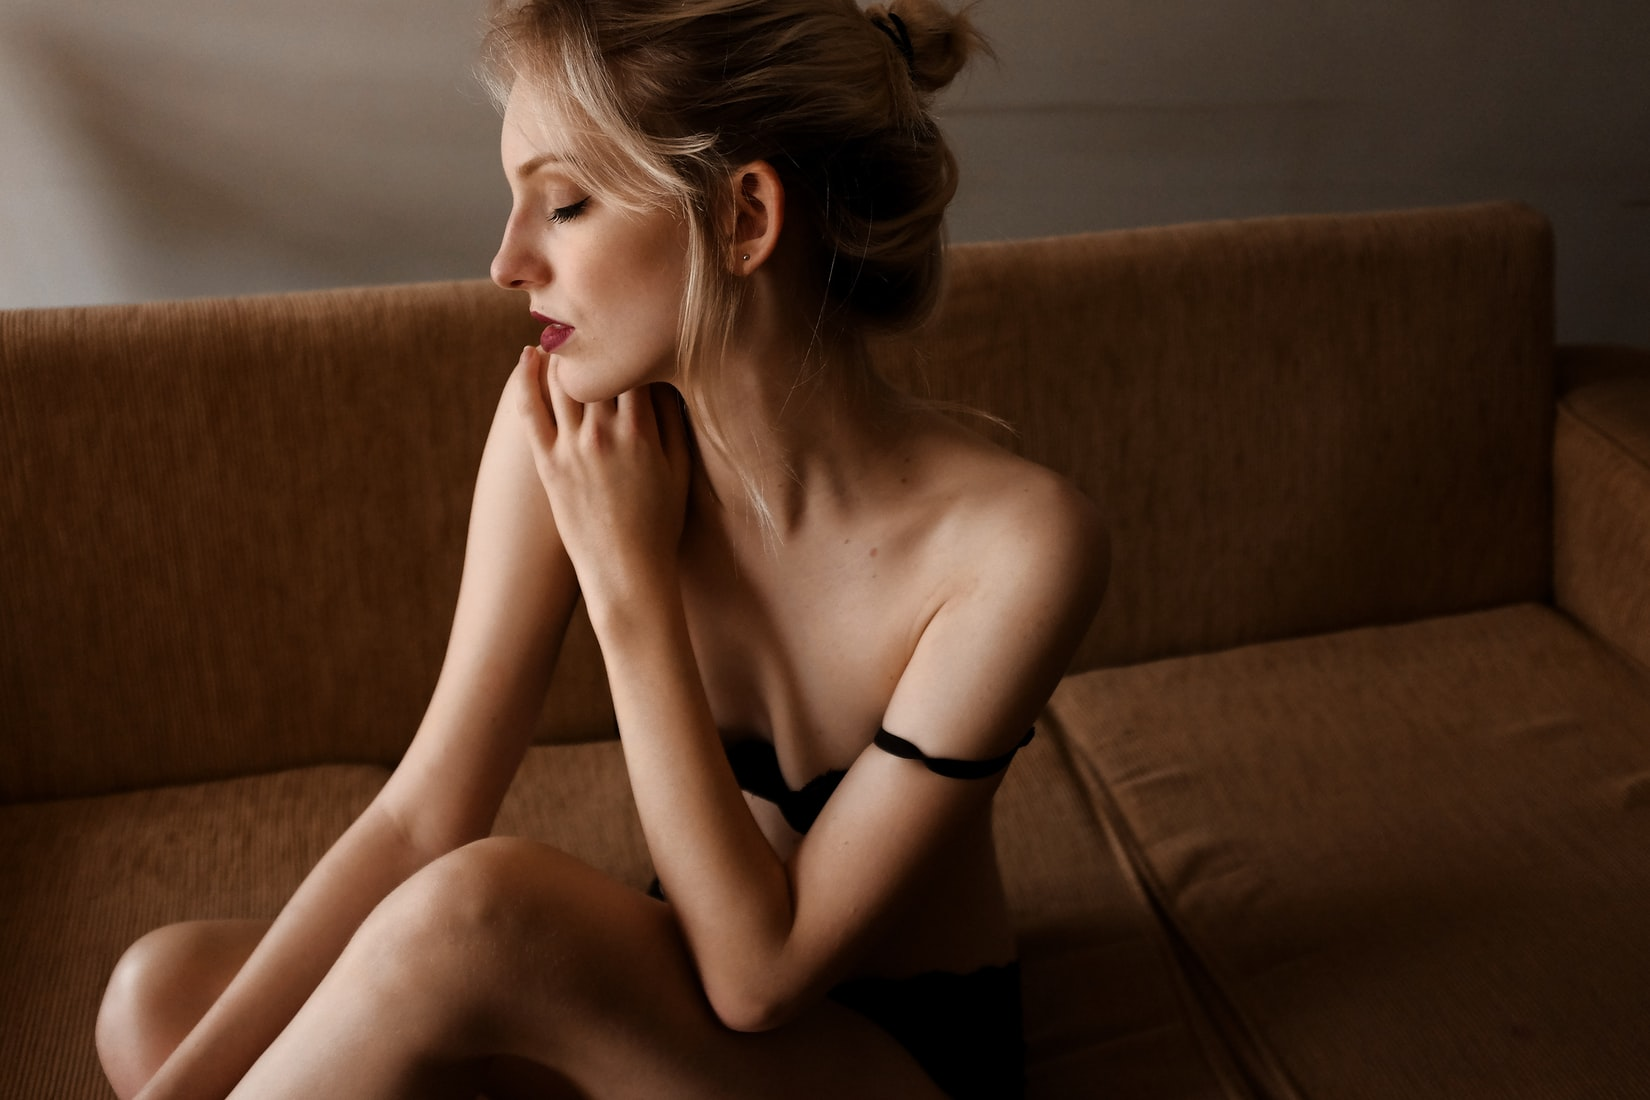 Blonde woman with low libido wearing black underwear and sitting on brown couch